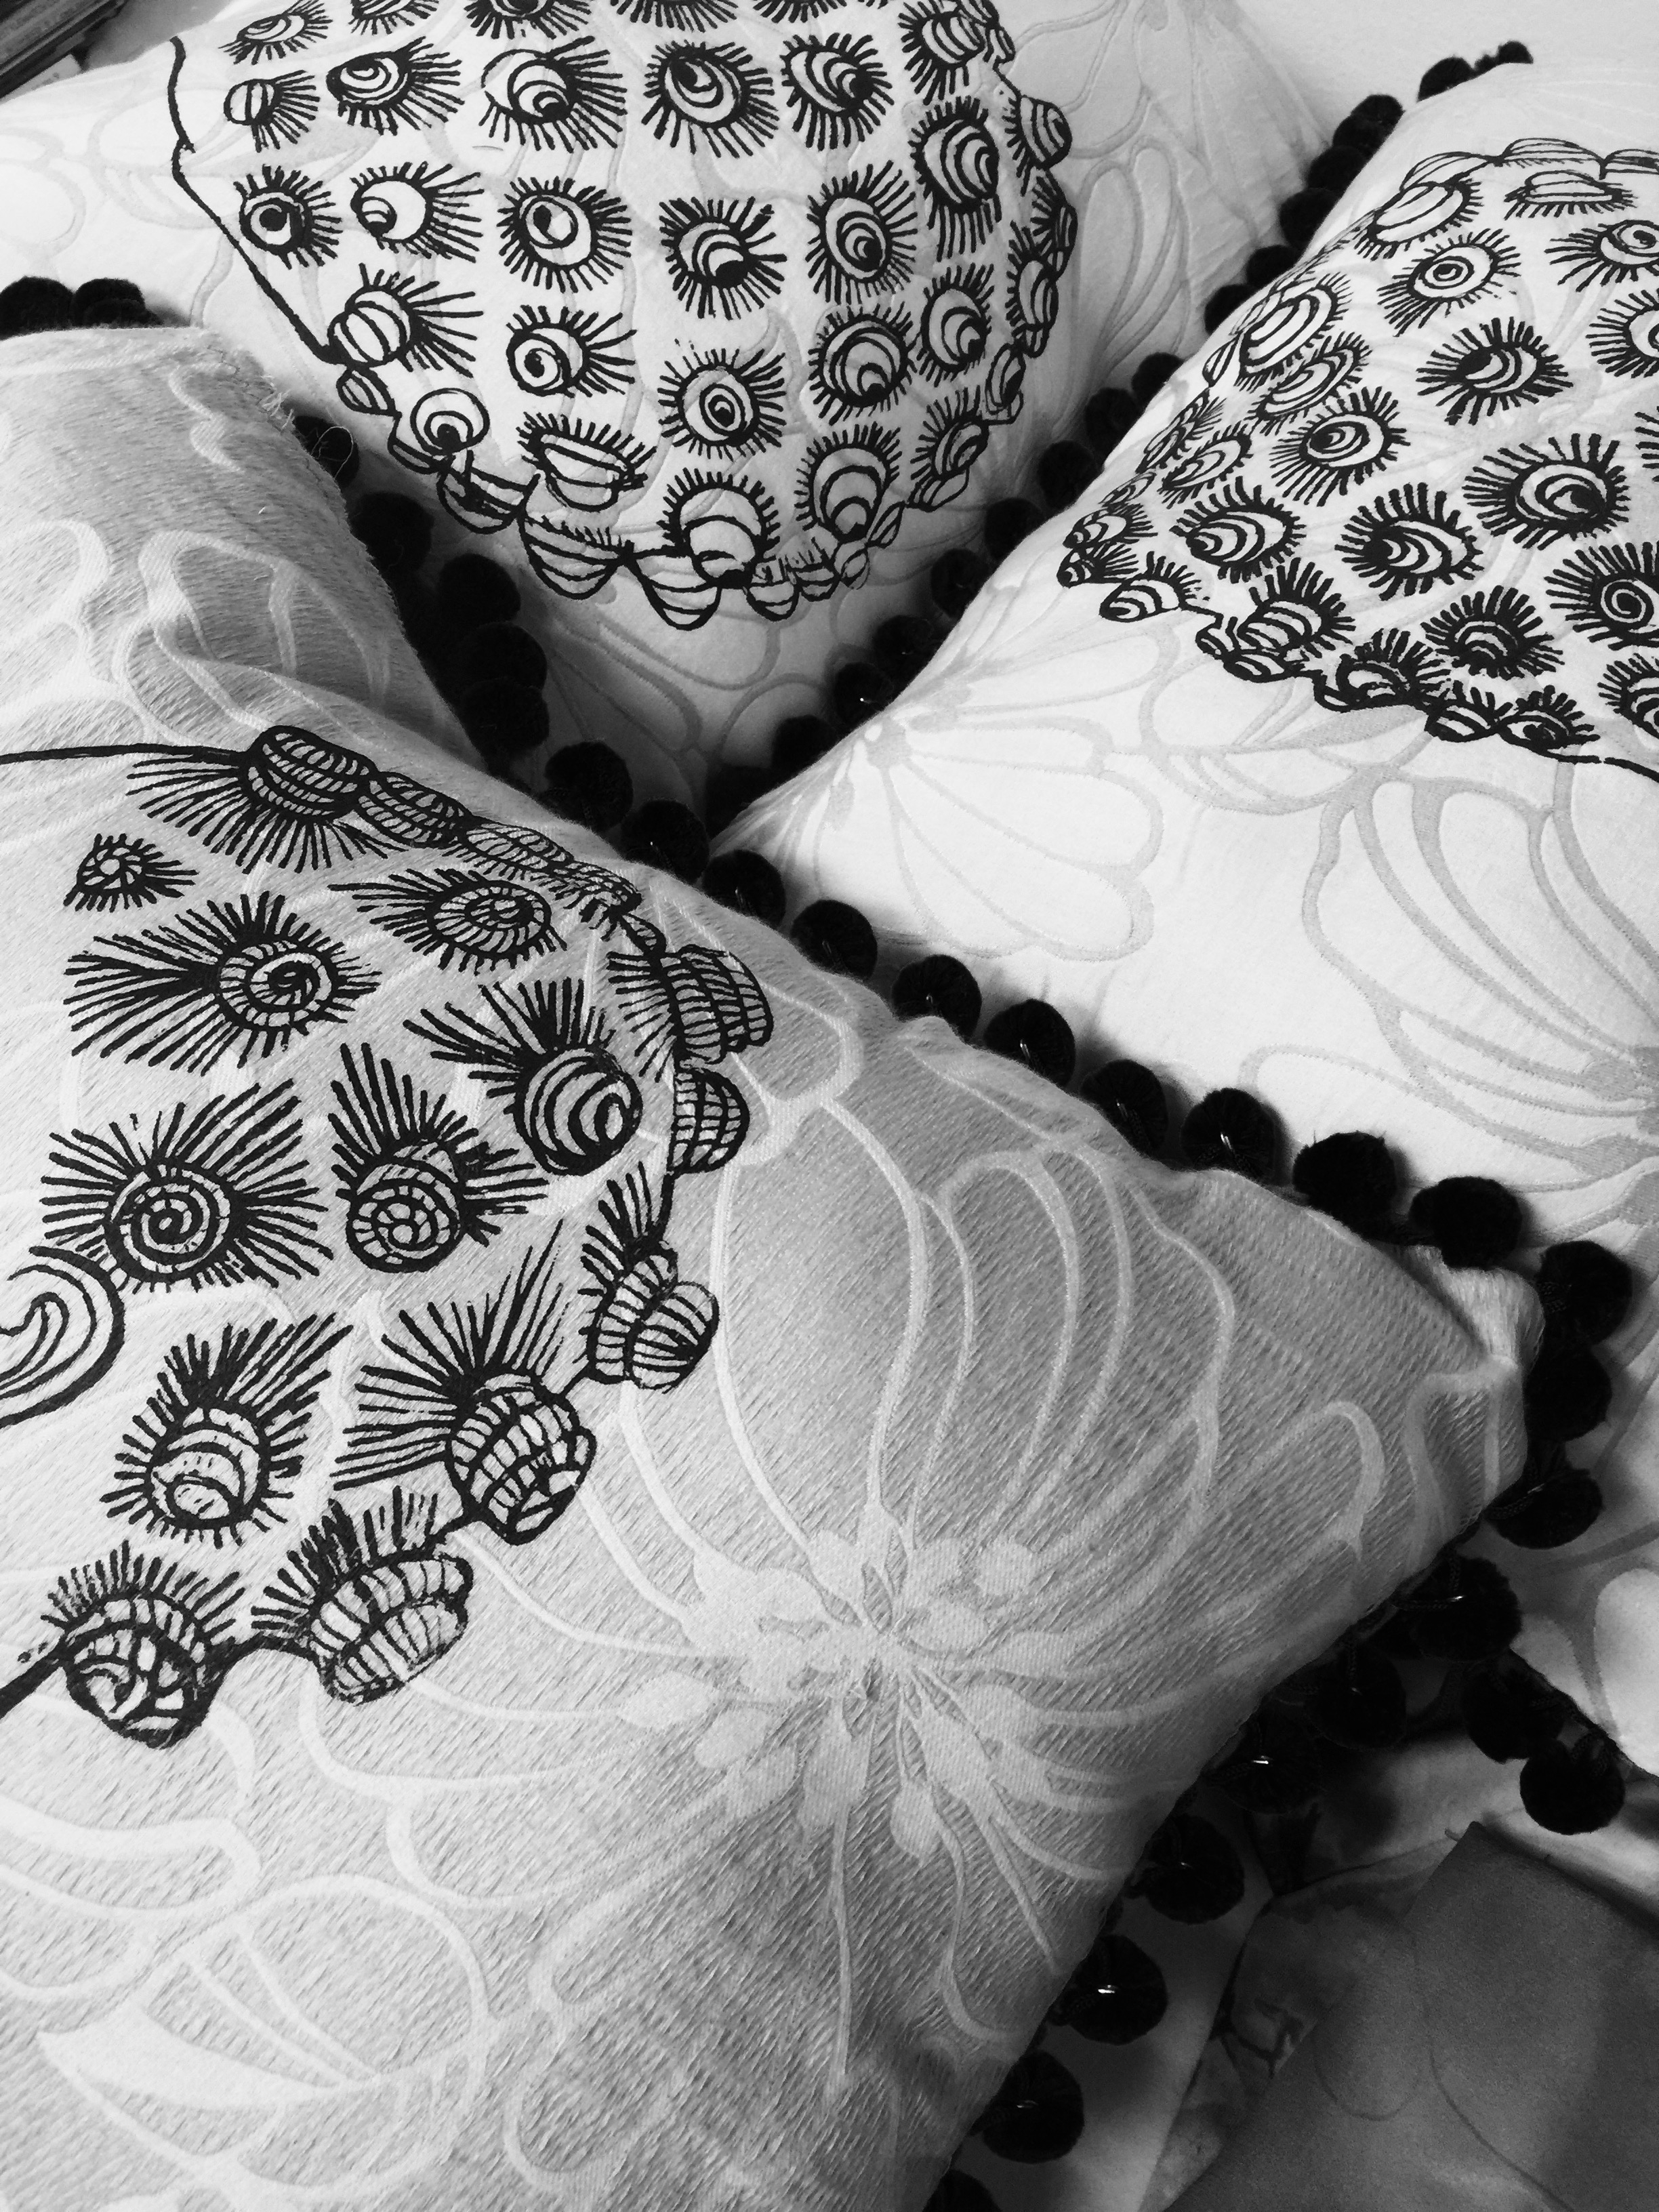 Working on a collection of screen printed decorative pillows on one of kind fabrics.